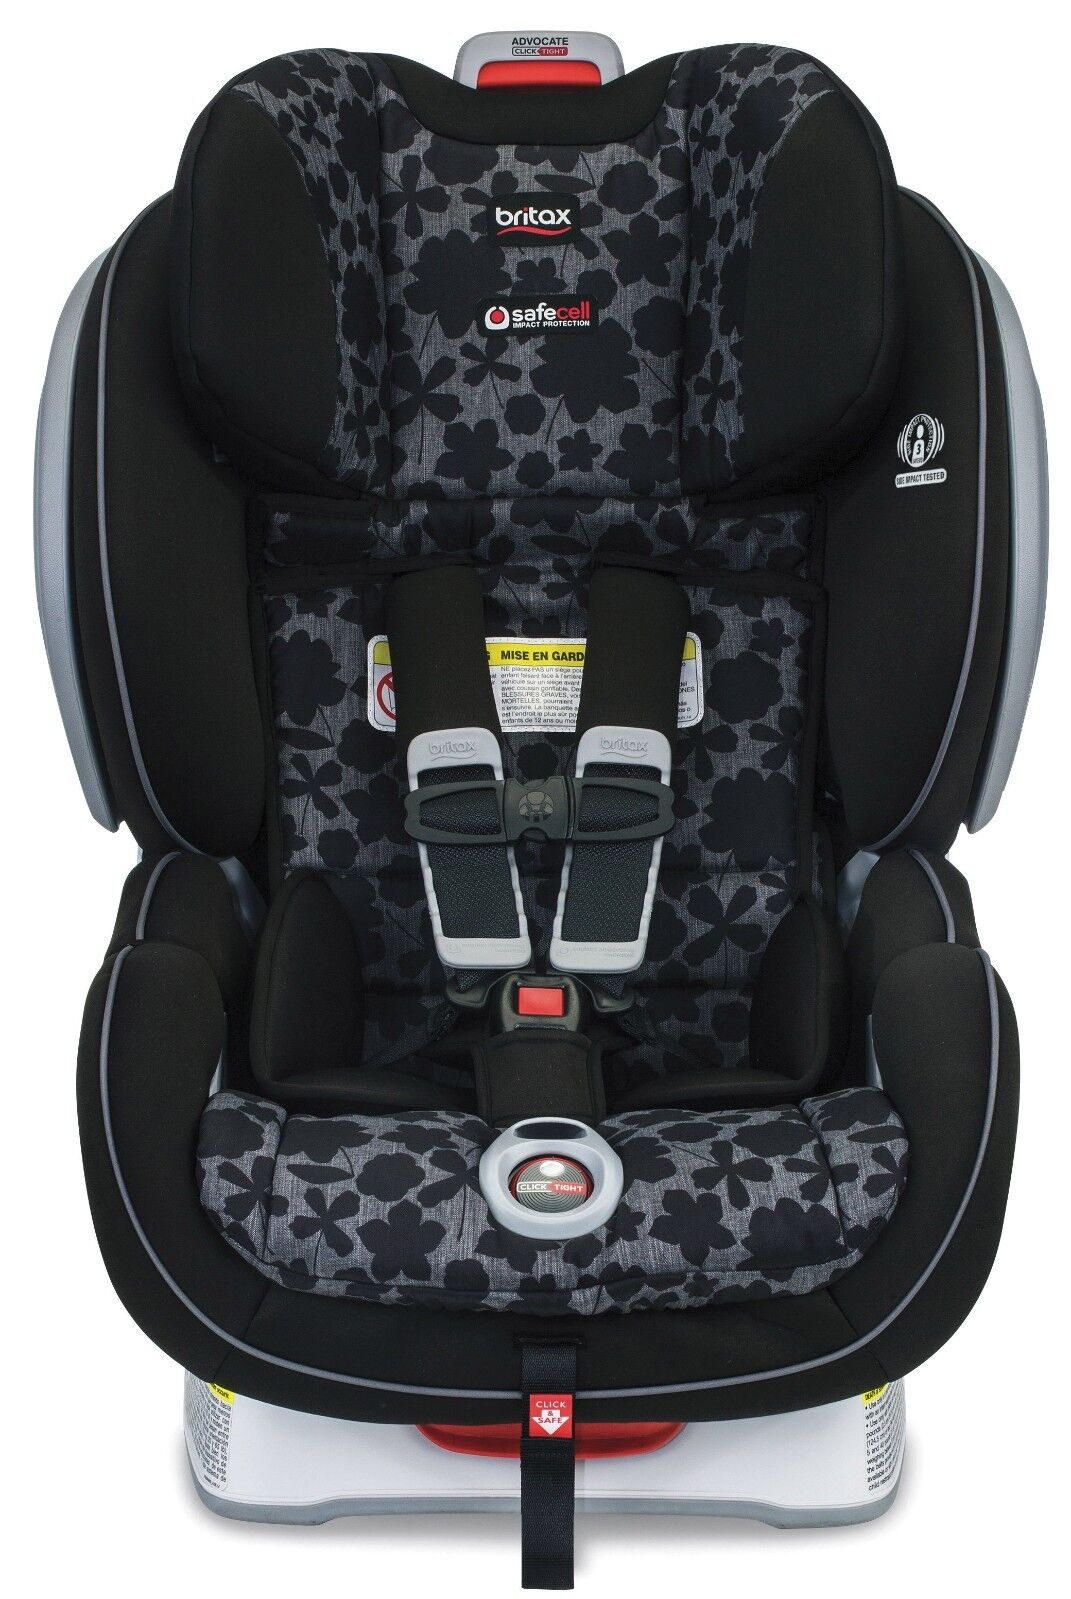 Britax Convertible Child Cup Holder For Car Seat Black S02400800 Christmas